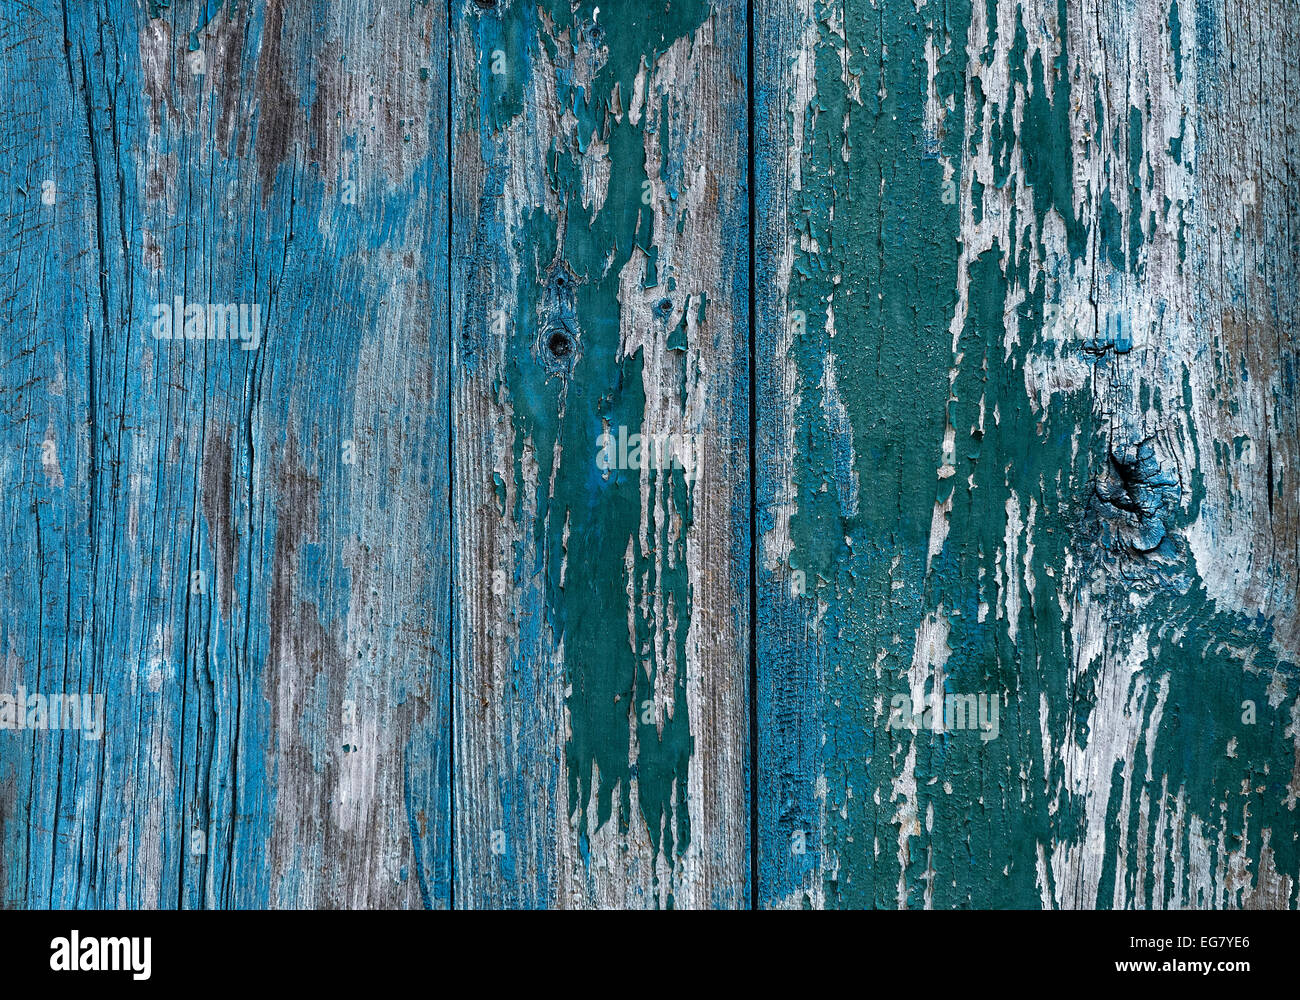 Peeling paint texture abstract. - Stock Image